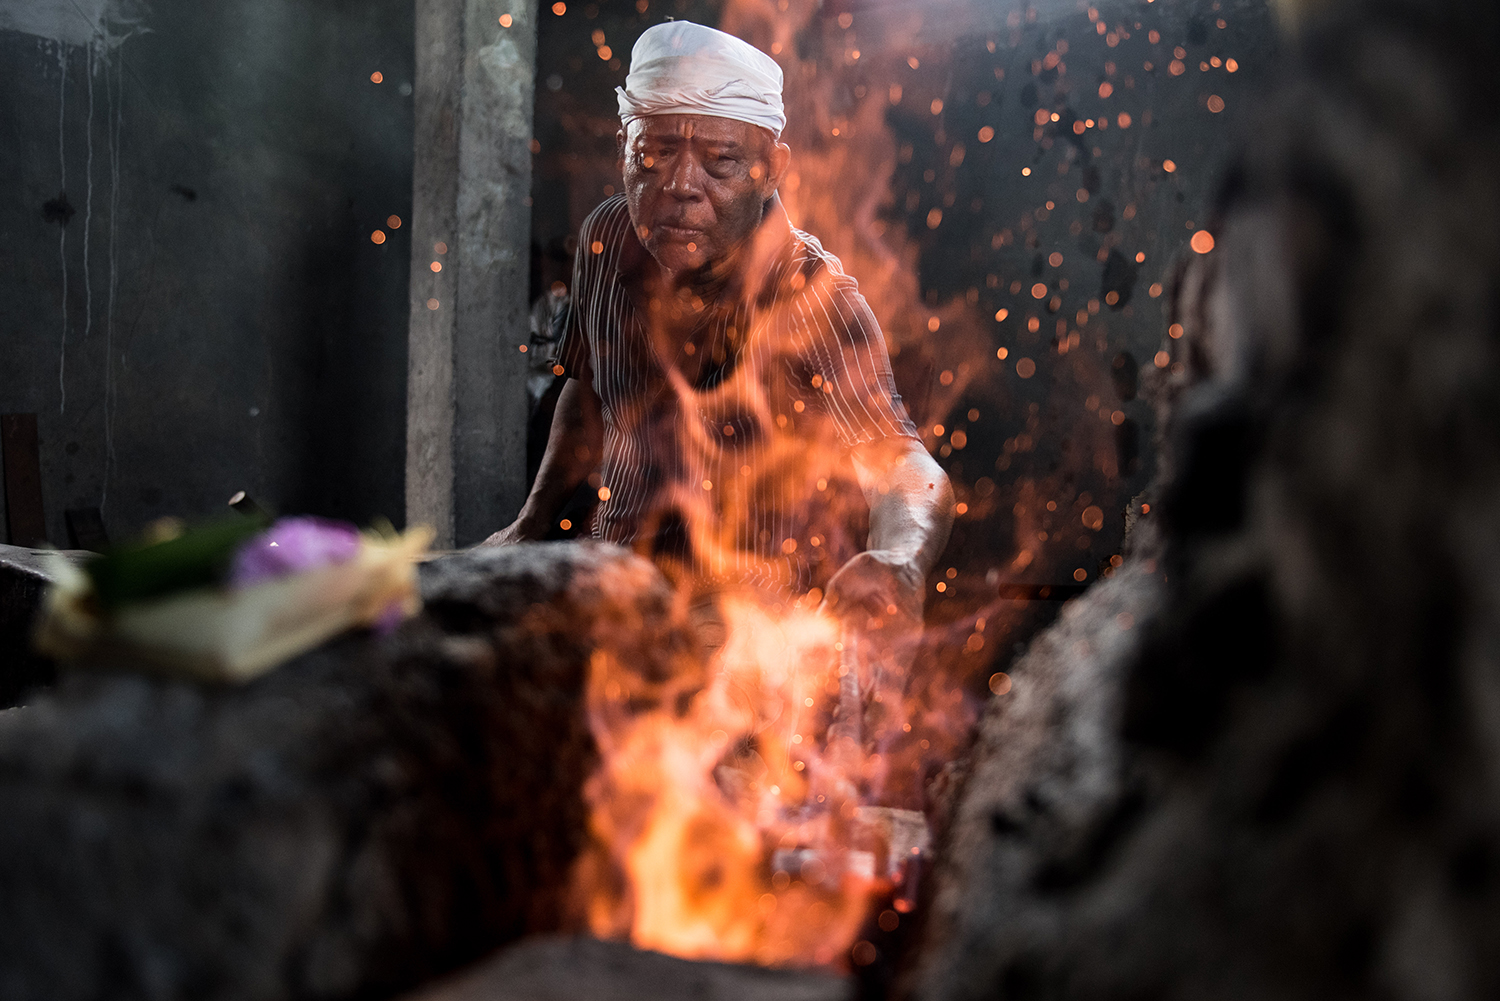 Pandé Ketut Mudra of Kusambe reaches into his forge with a tool to examine the readiness of a knife blade he is forging.